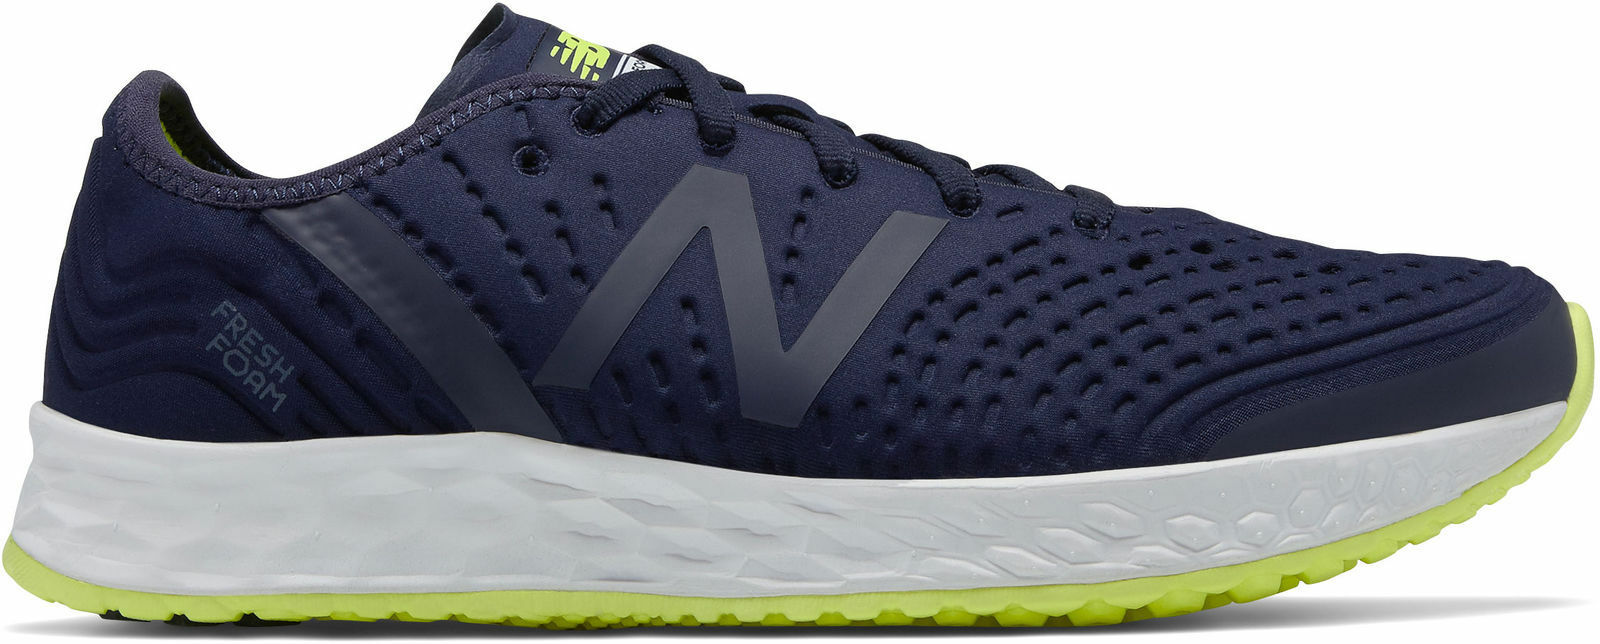 New Balance Balance Balance NEW Fresh Foam Crush Womens Cross Training shoes WXCRSPS sz 7.5  100 385e91